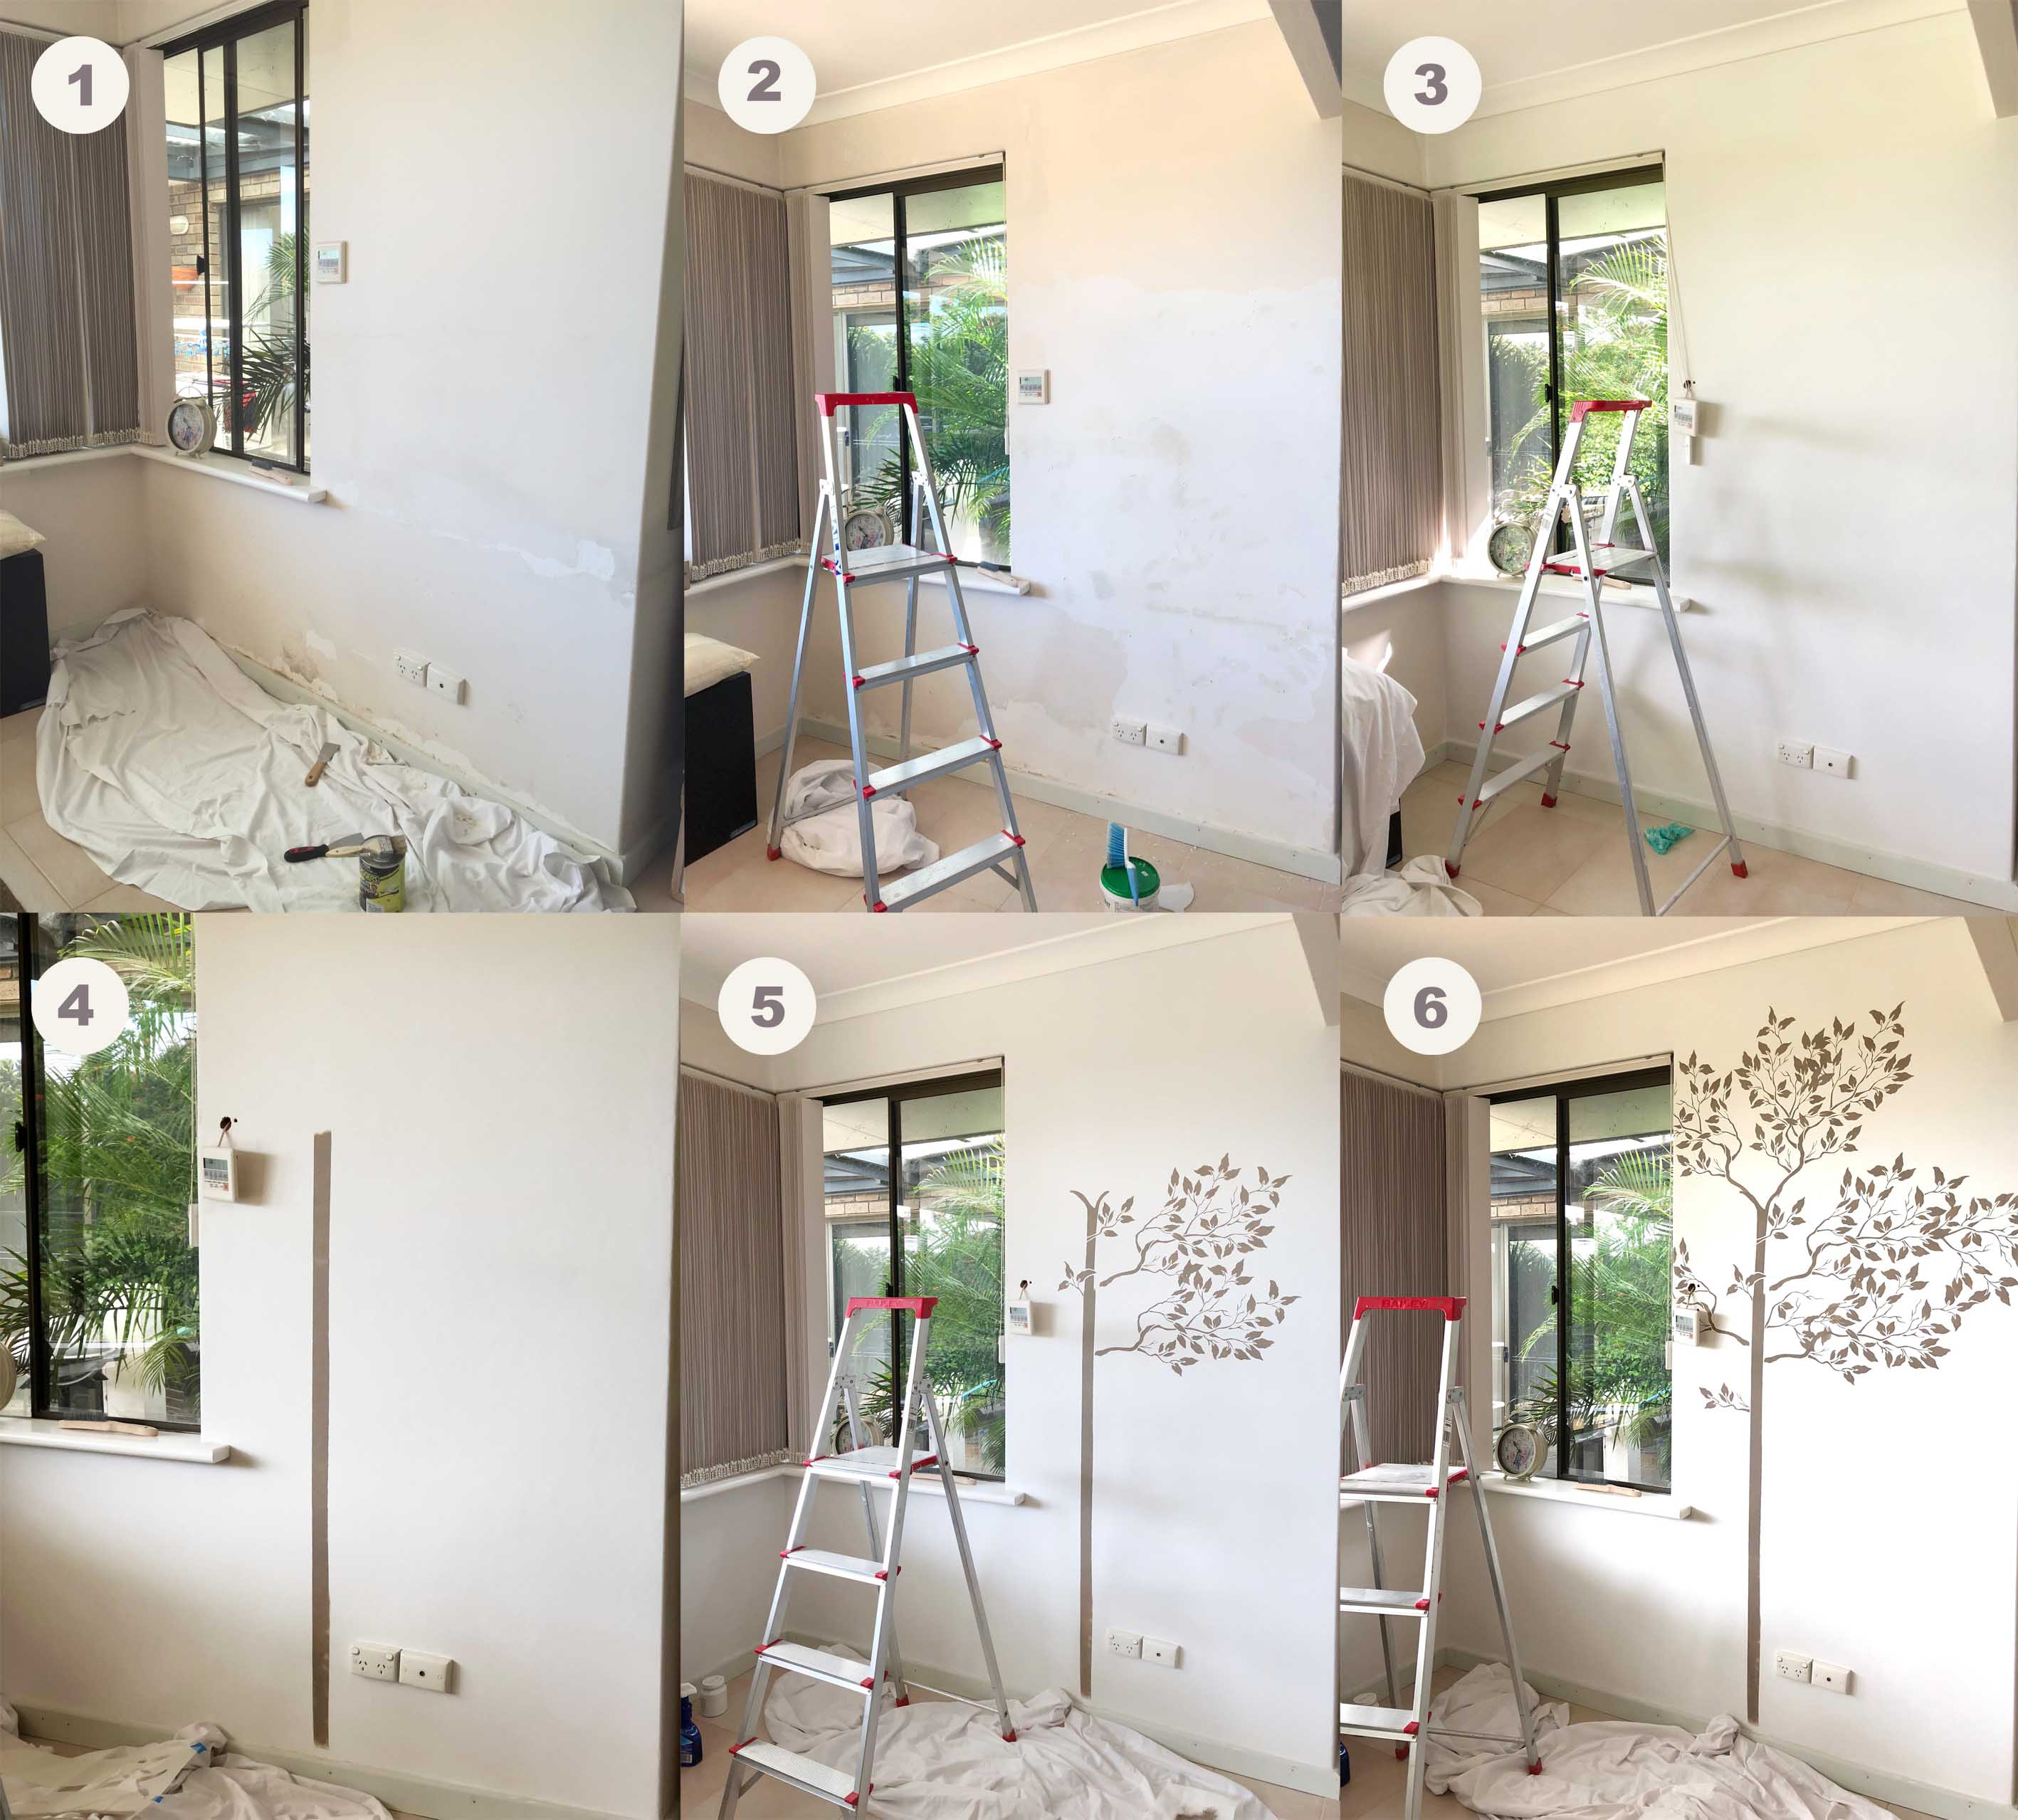 Wall stencil large tree walls stencils plaster stencils collage of process living room wall no logo amipublicfo Choice Image